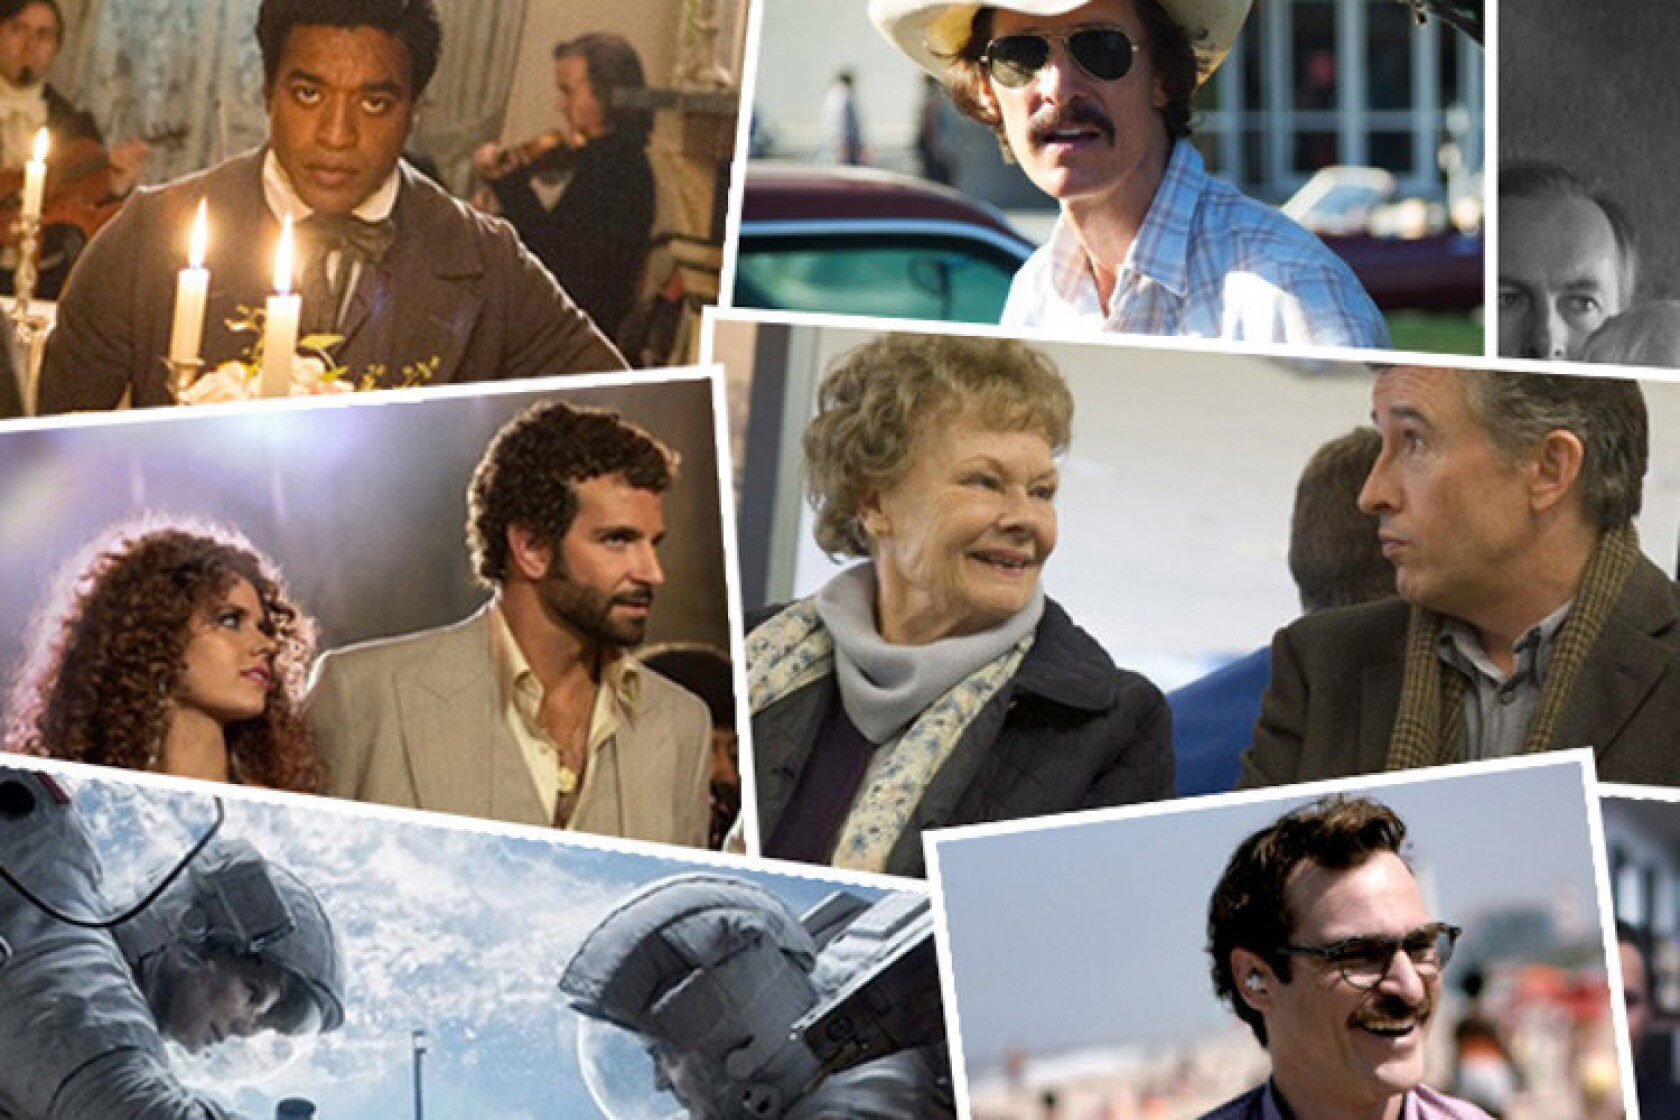 Oscars 2014: The full list of nominees and winners - Los ...